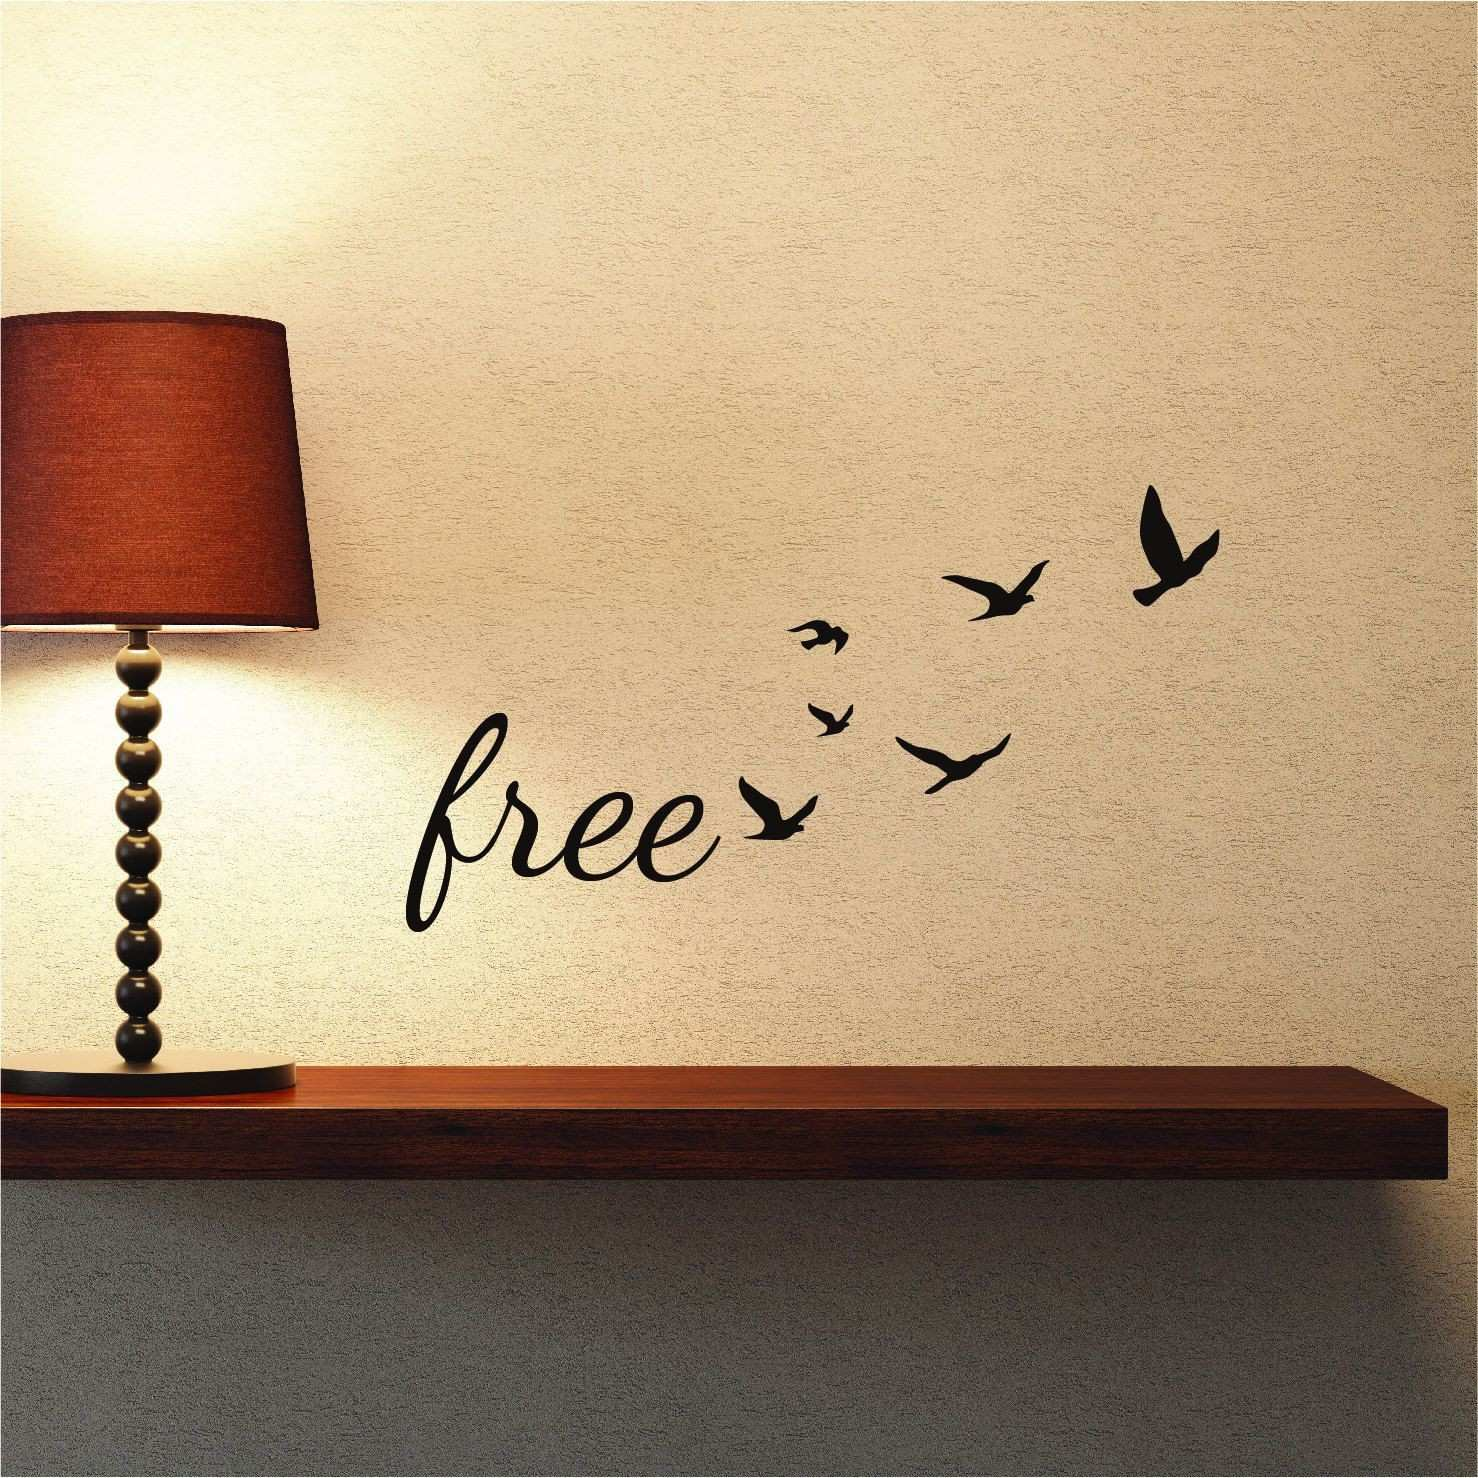 Freedom Wall Decal Quote with Flock Flying Birds Scheme Bird